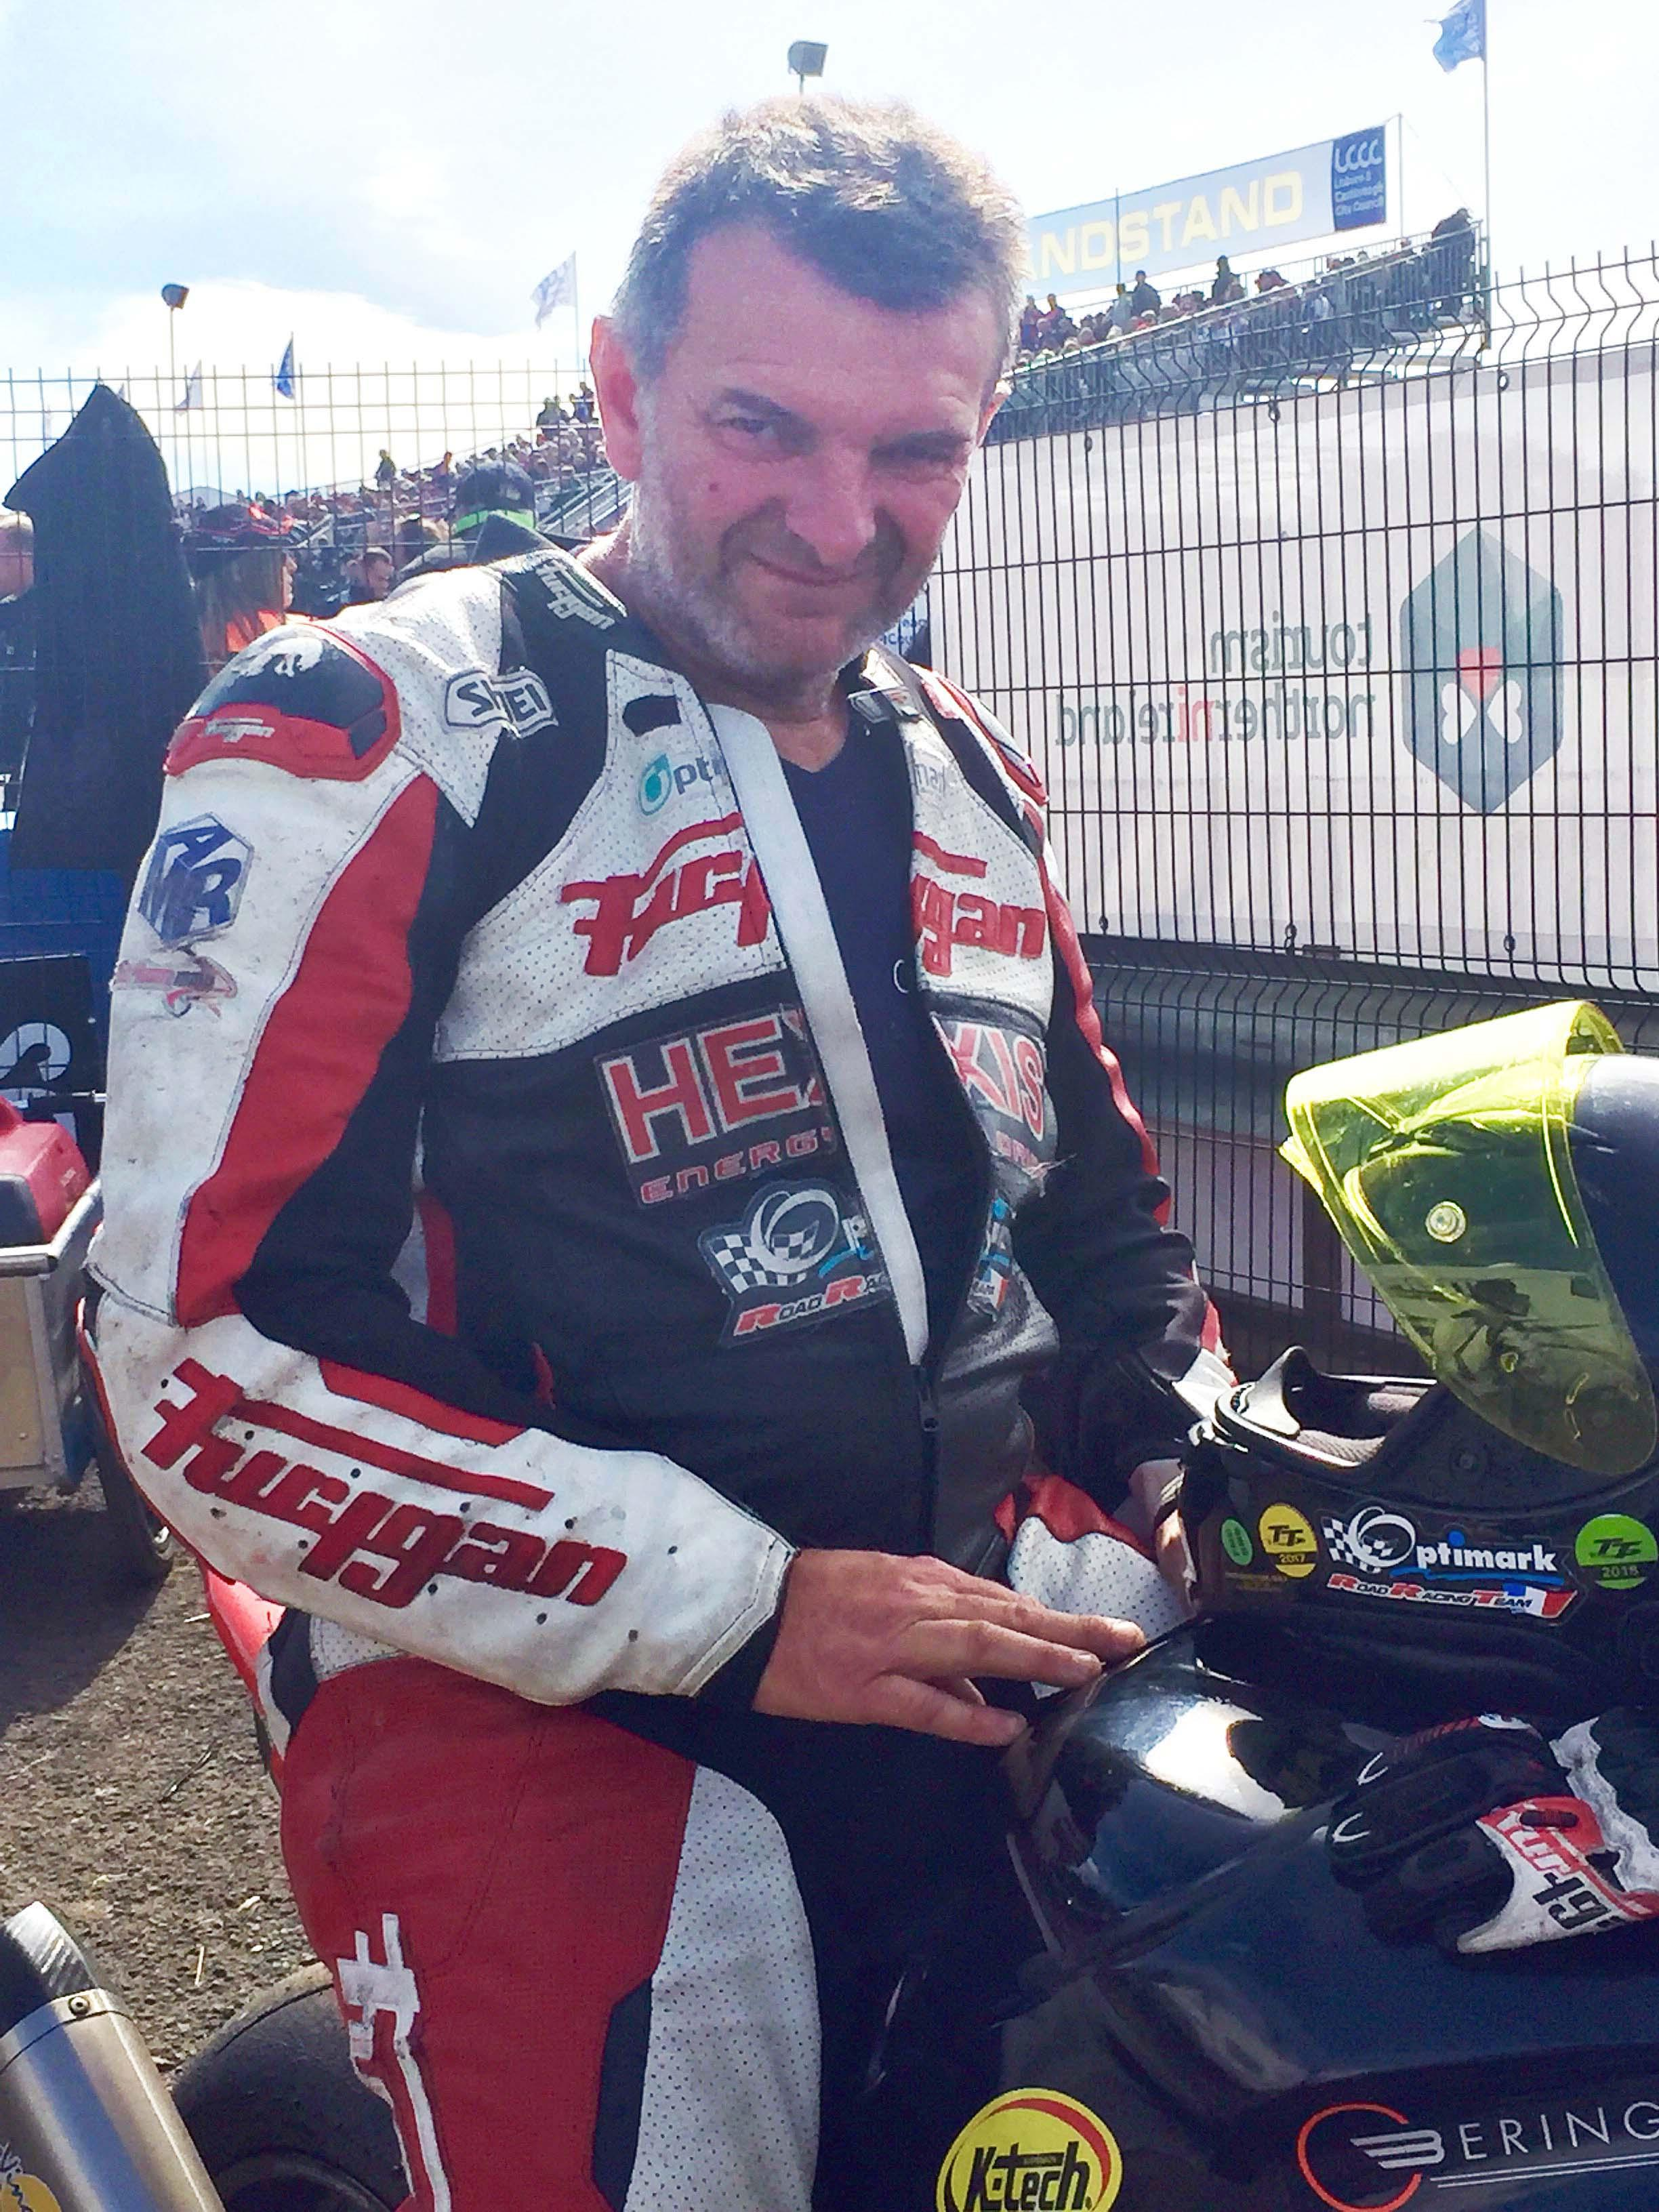 The French rider was a regular at the Ulster Grand Prix and Isle of Man TT road races